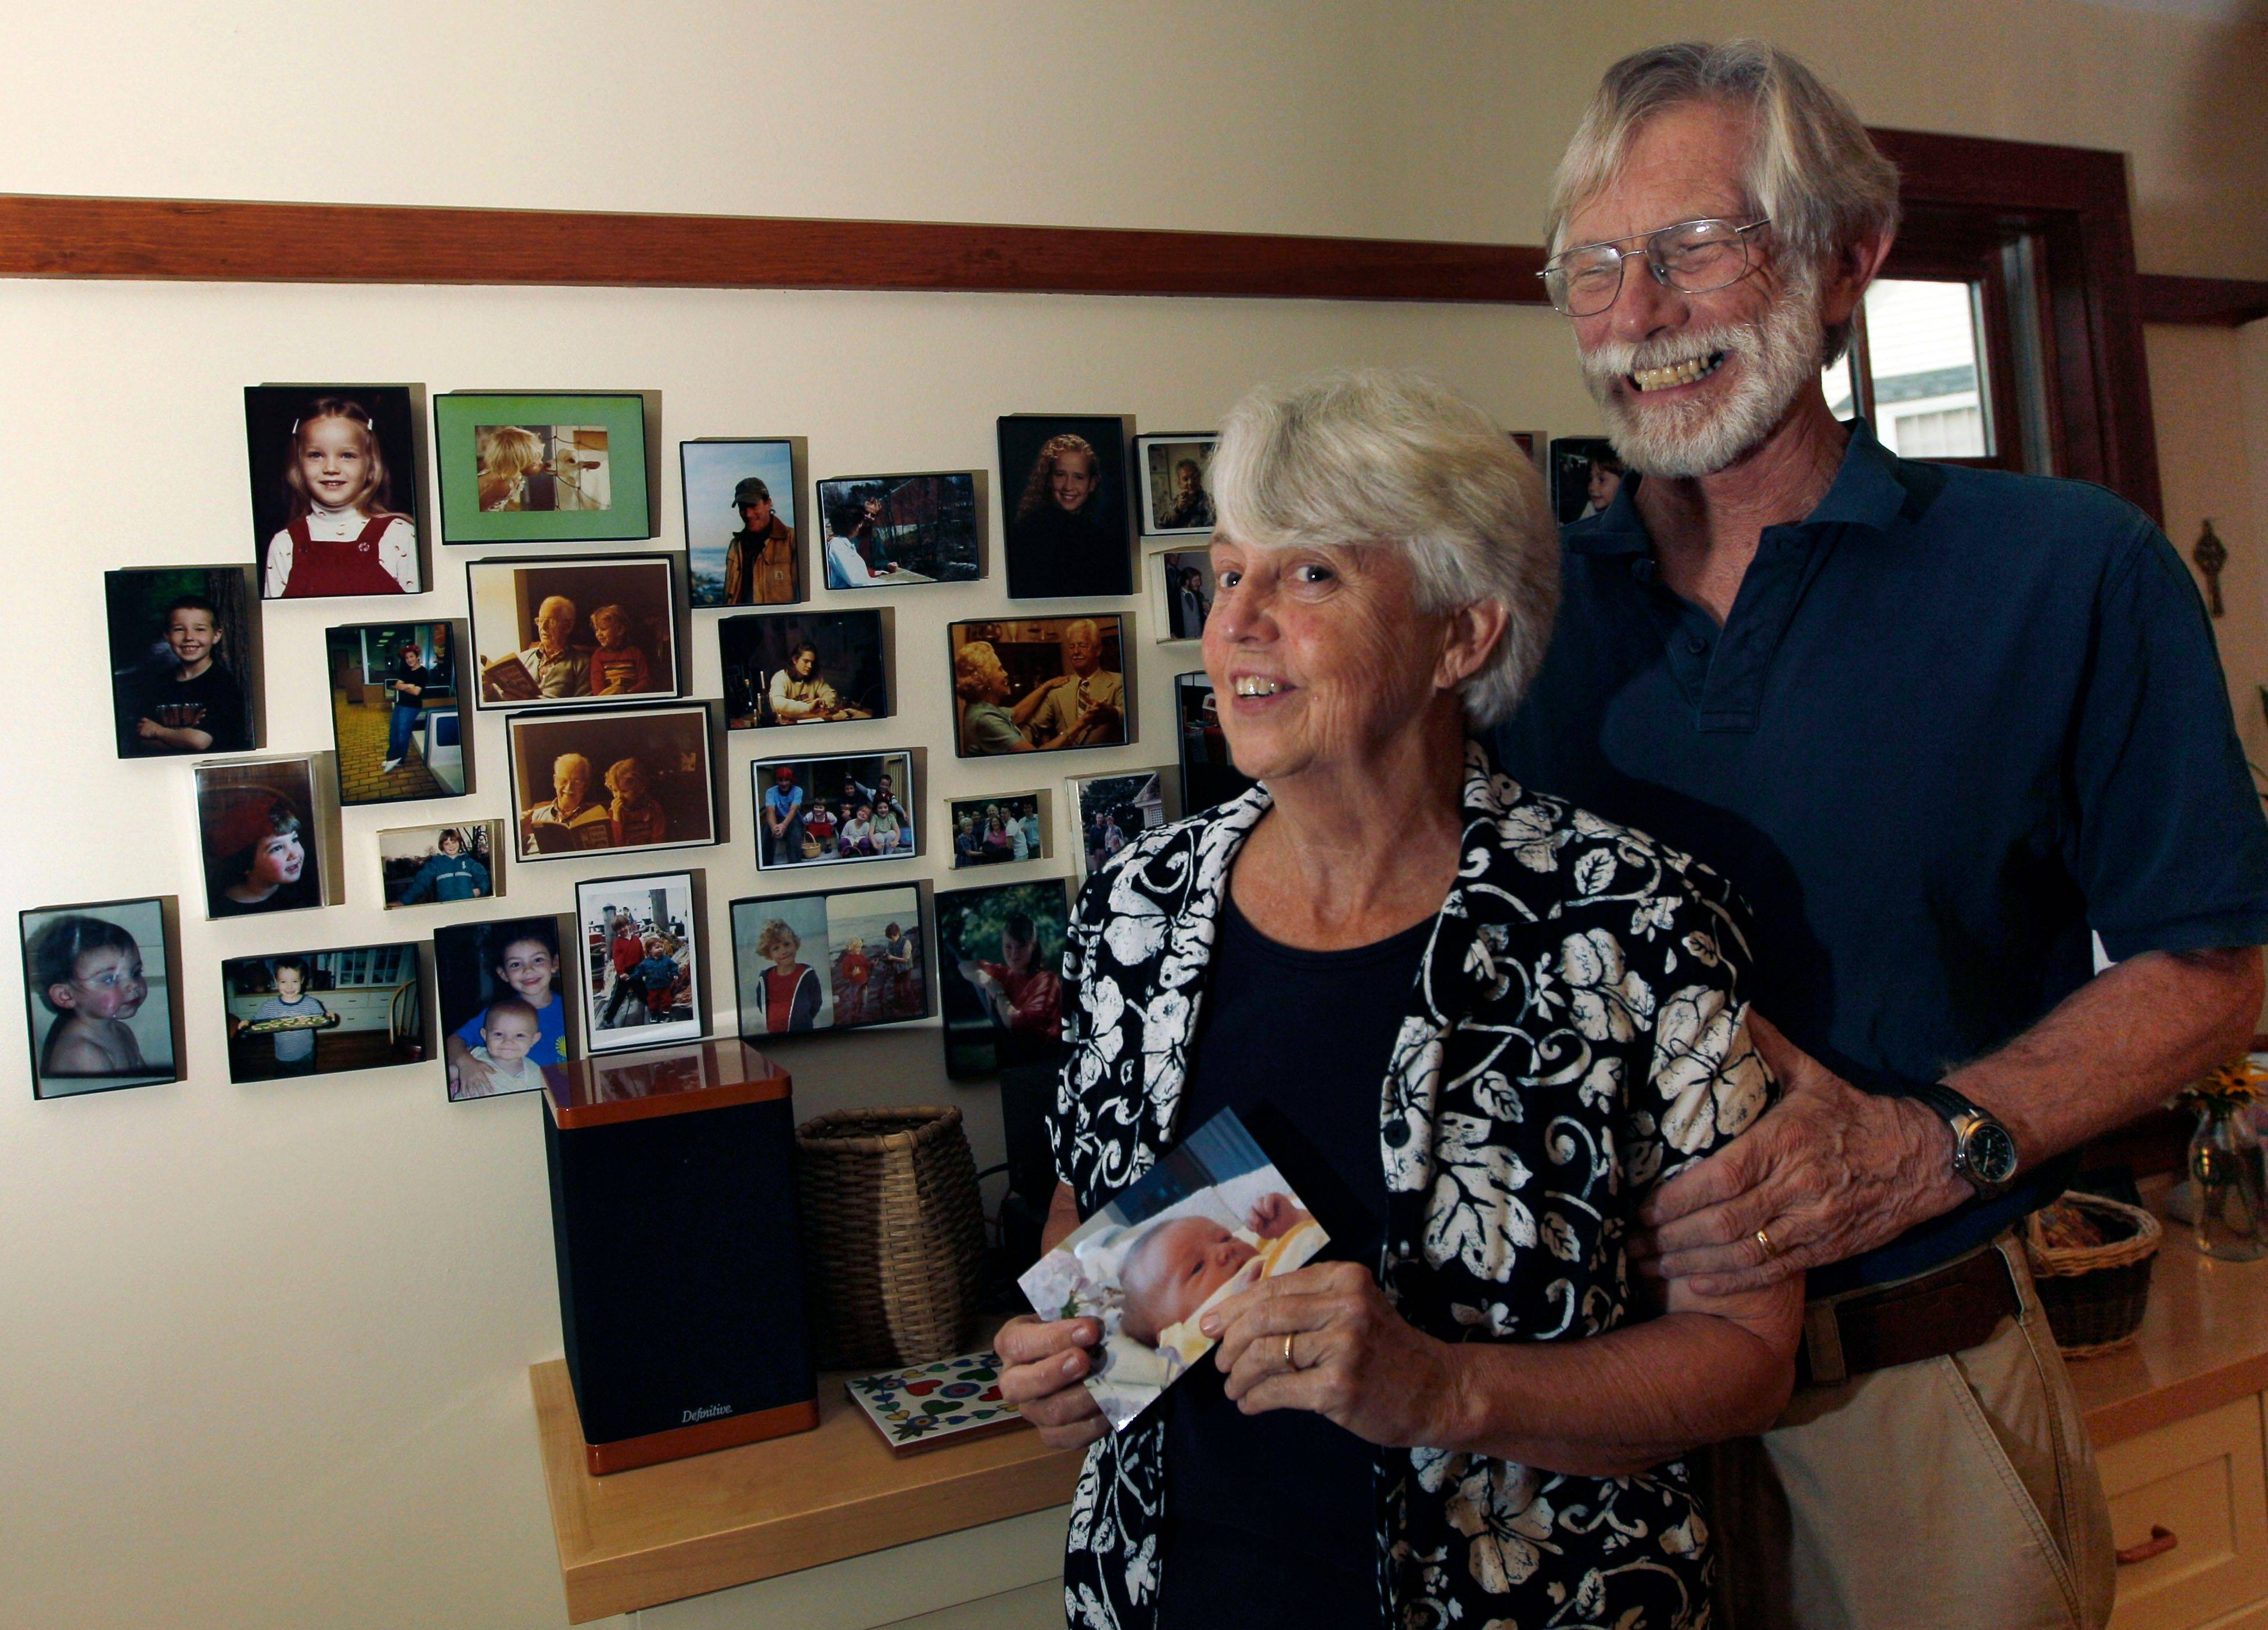 Eileen and Doug Flockhart laugh as she holds a picture of their seventh grandchild near a wall full of family photos in their home in Exeter, N.H.